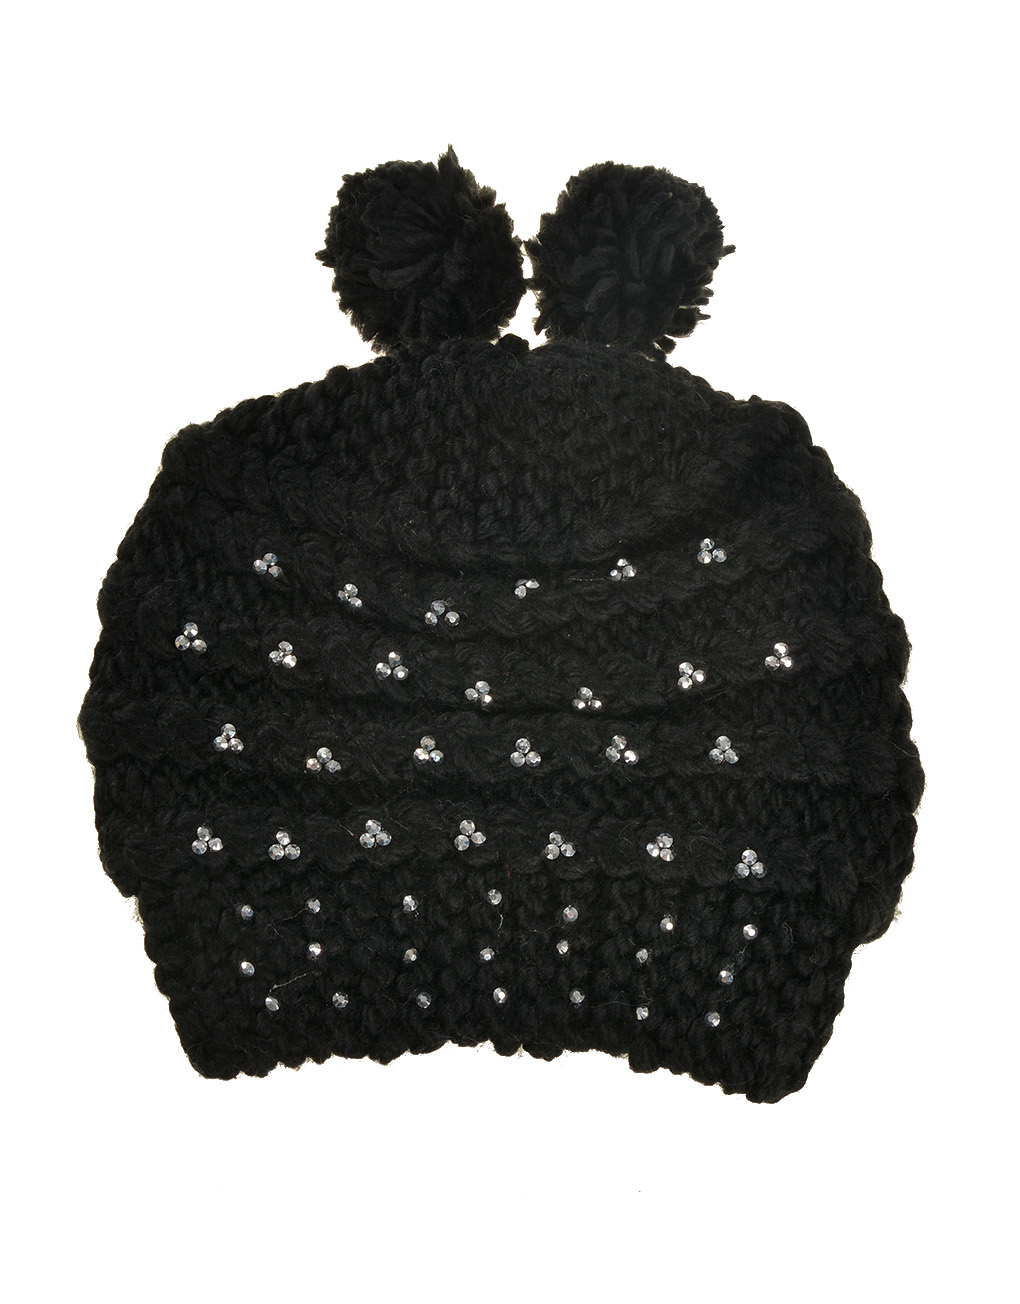 fca3ffd1be32e Hand Knitted Waves Pattern Hat with Diamonds Wholesale